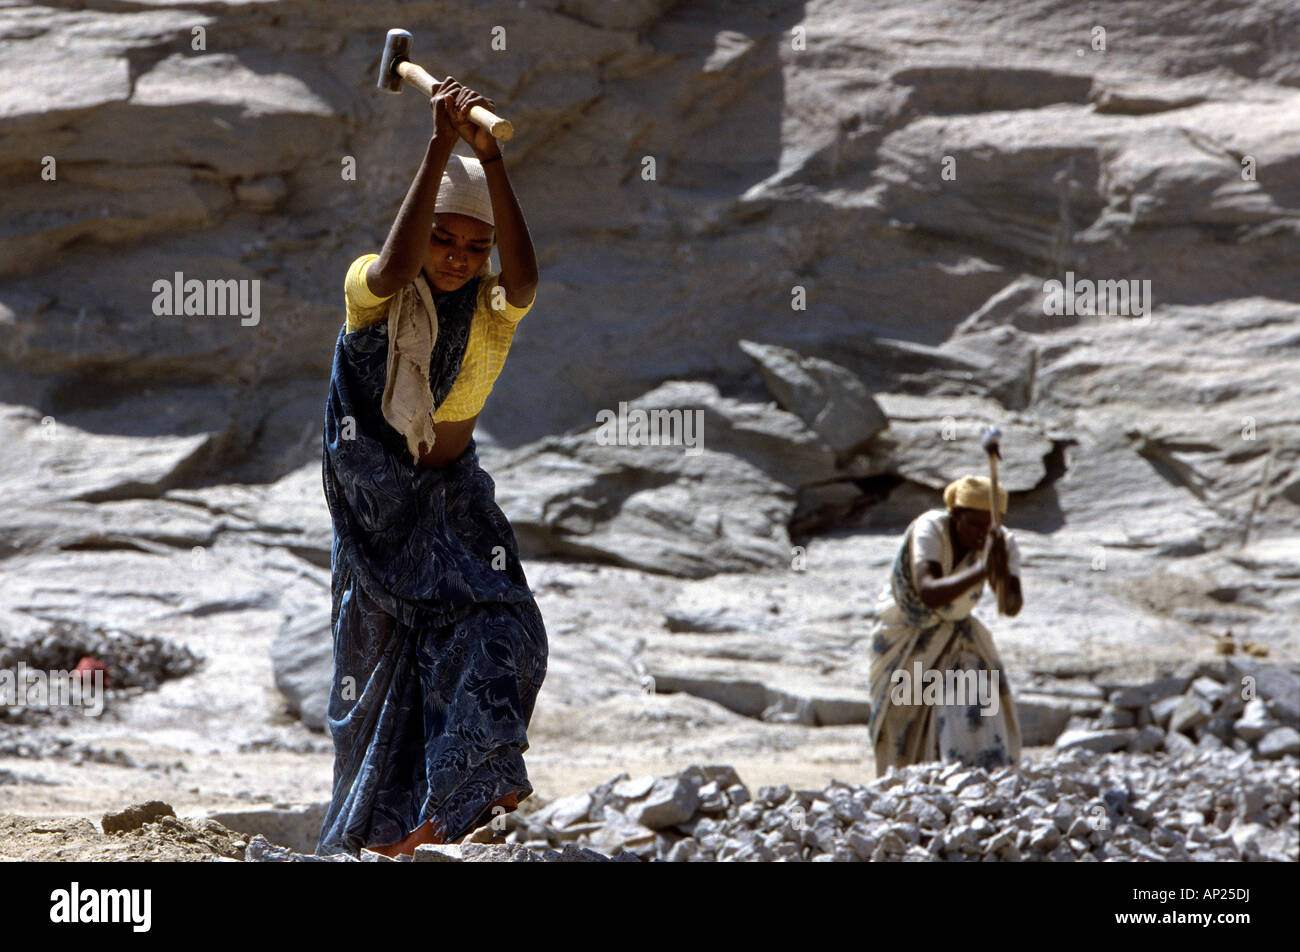 India: women from the cast of the untouchables working in a quarry near Madurai - Stock Image